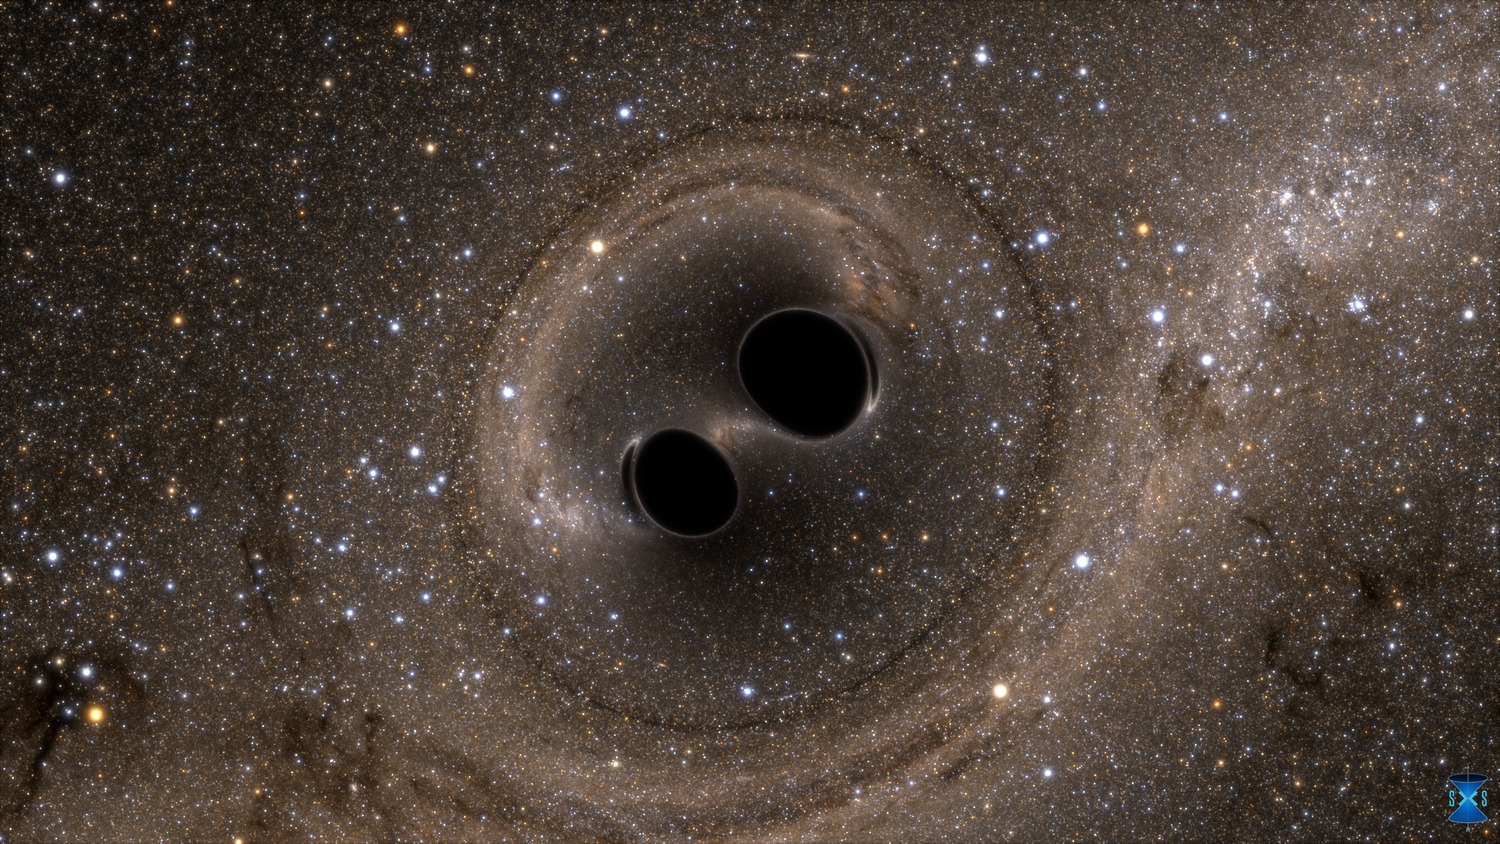 The collision of two black holes holes—a tremendously powerful event detected for the first time ever by the Laser Interferometer Gravitational-Wave Observatory, or LIGO—is seen in this still from a computer simulation. LIGO detected gravitational waves, or ripples in space and time generated as the black holes spiraled in toward each other, collided, and merged. This simulation shows how the merger would appear to our eyes if we could somehow travel in a spaceship for a closer look. It was created by solving equations from Albert Einstein's general theory of relativity using the LIGO data. Image by LIGO